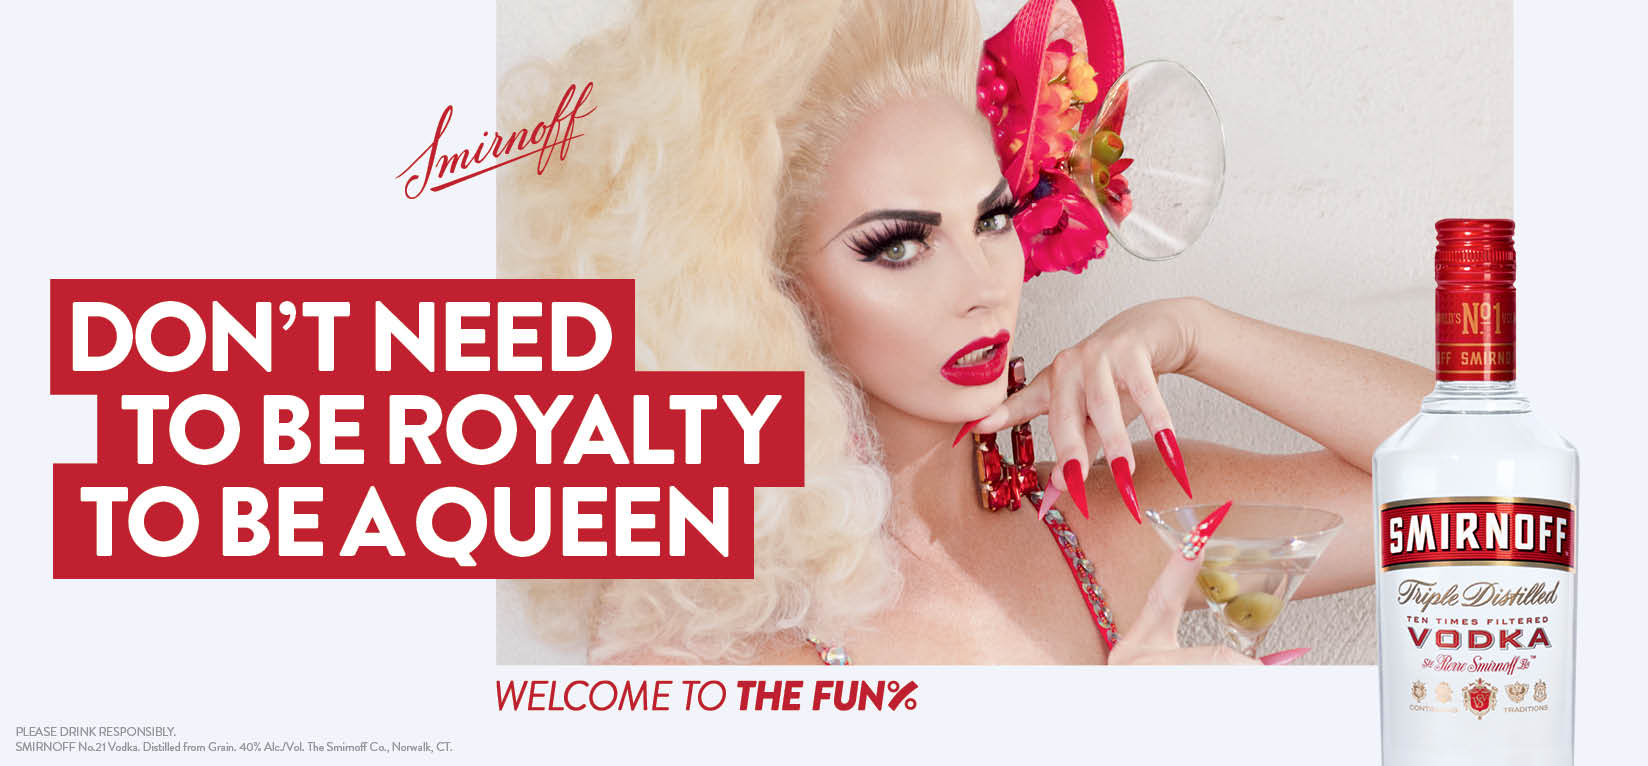 SMIRNOFF Vodka Partners with Alyssa Edwards for Welcome to the Fun% Campaign